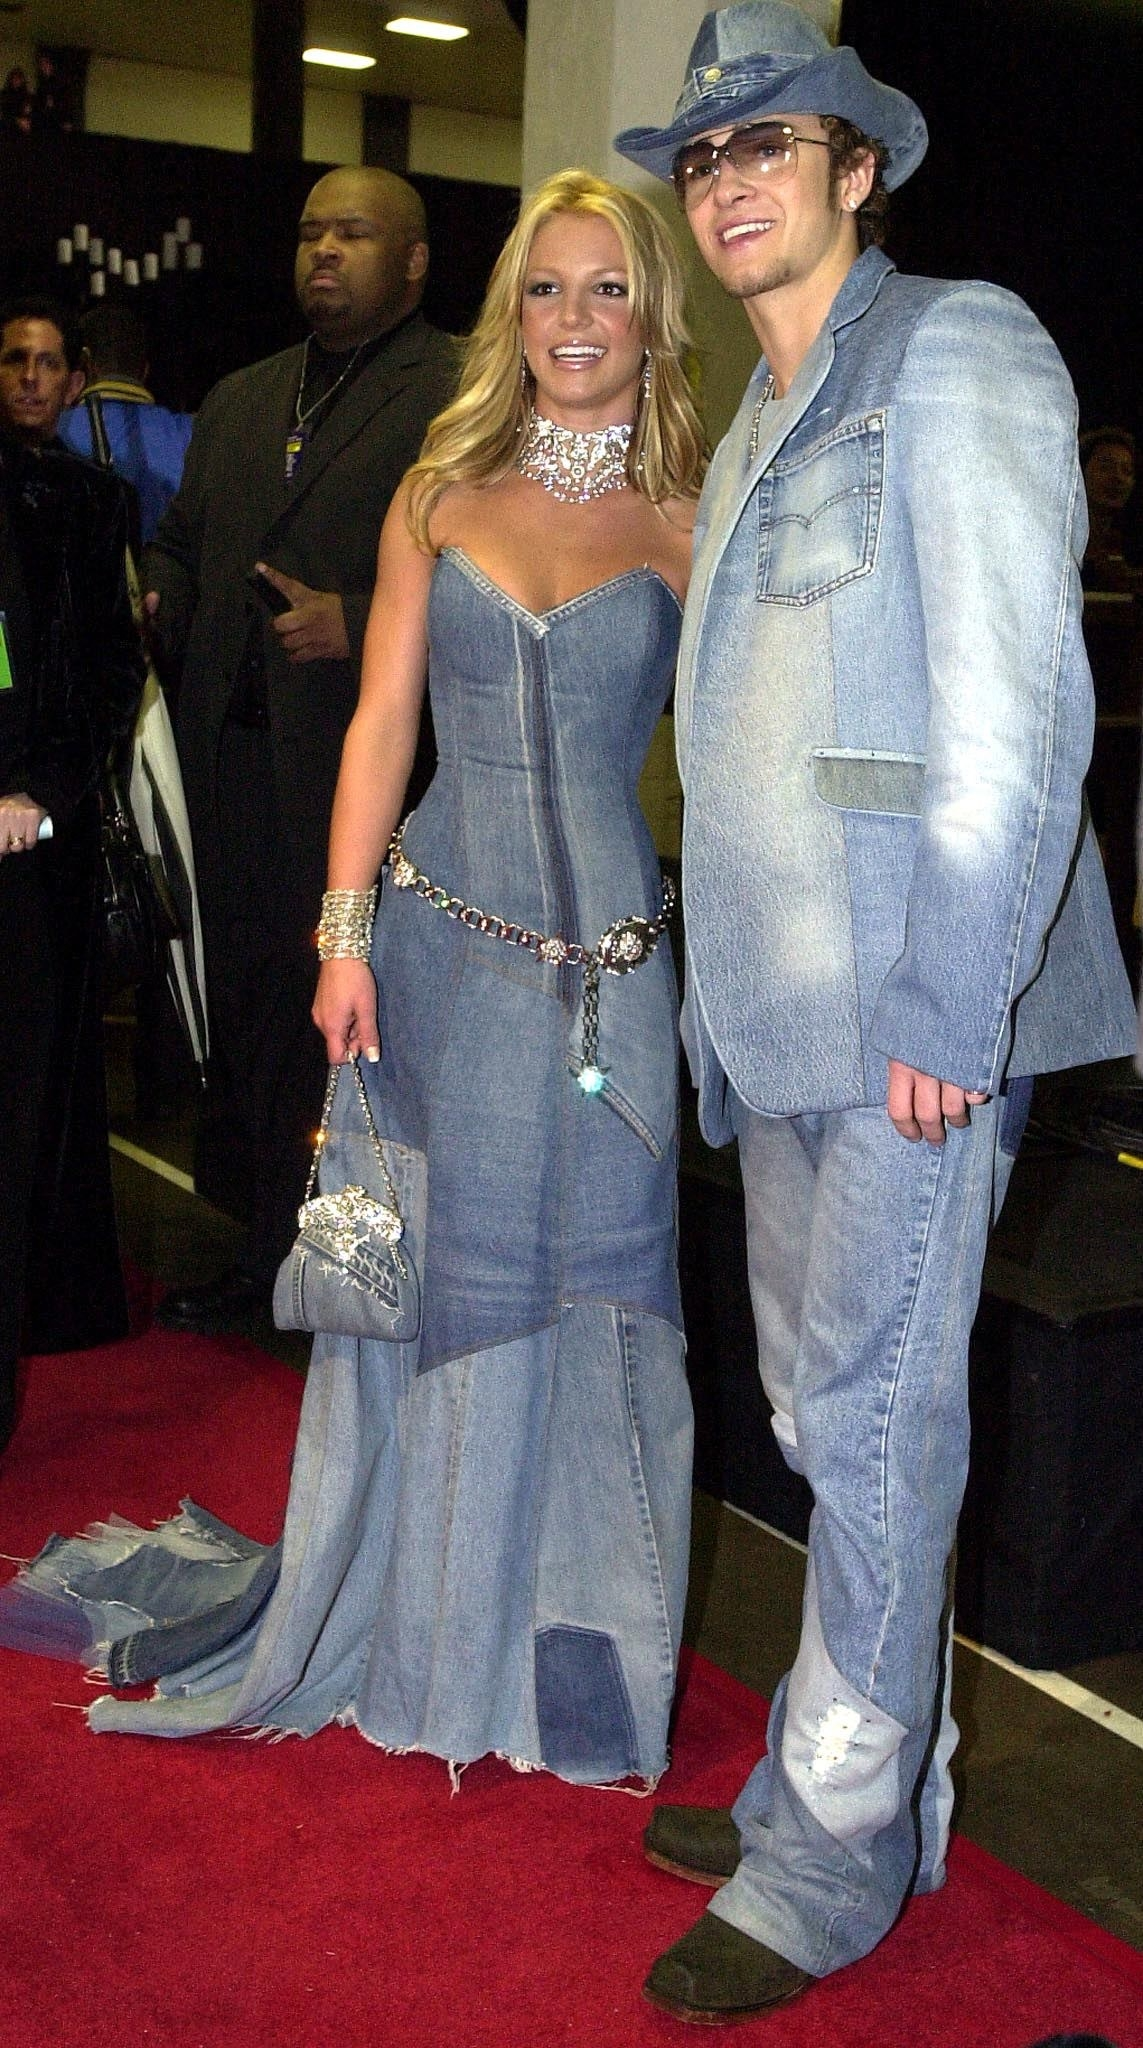 Britney Spears and Justin Timberlake smiling and in denim